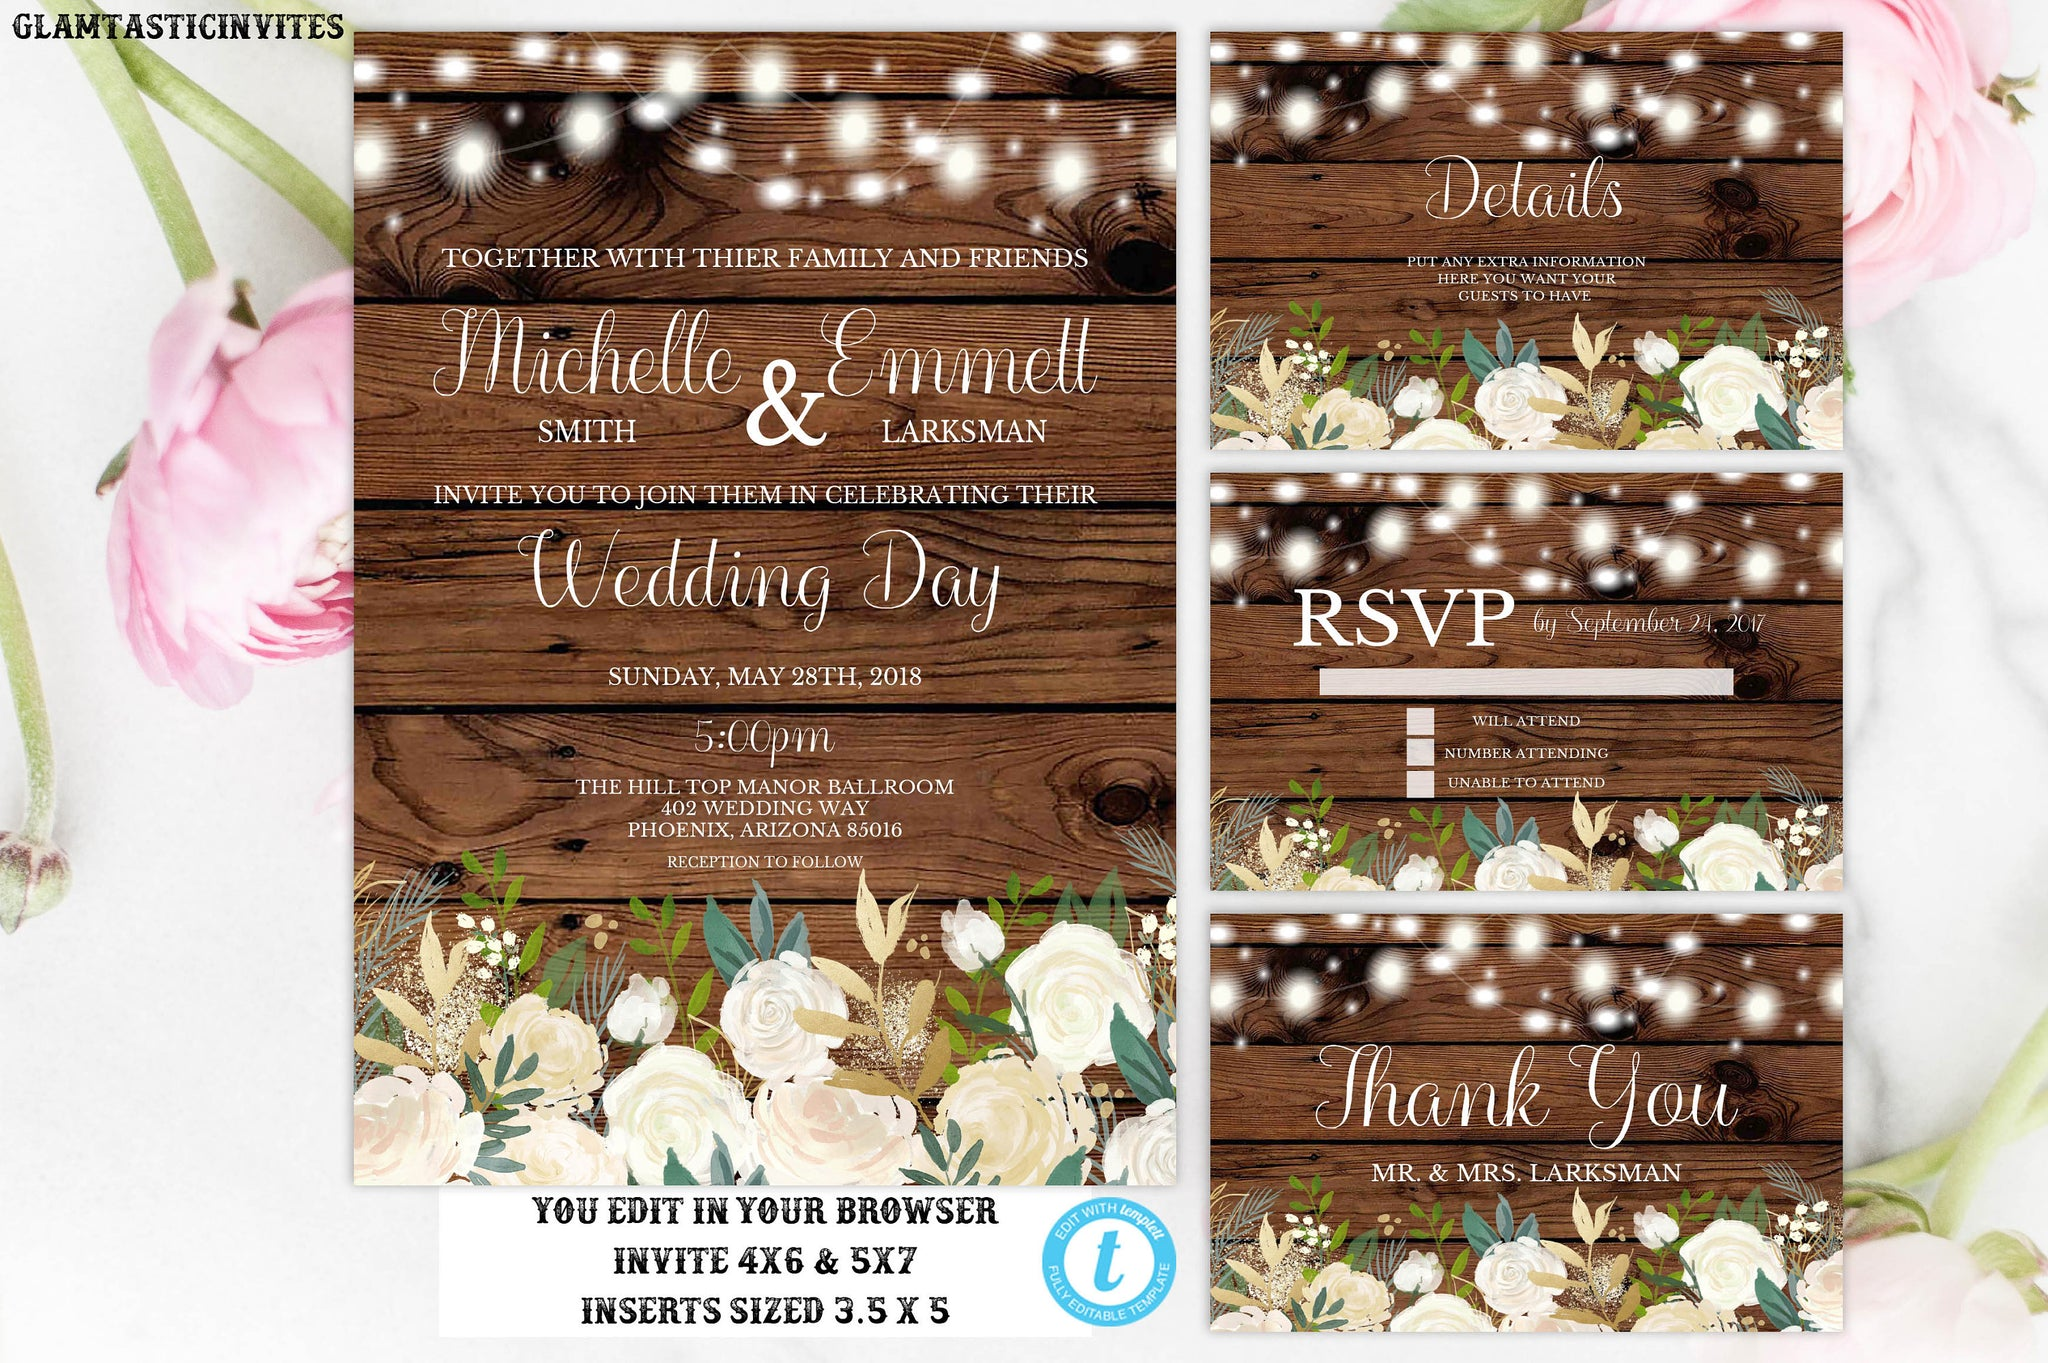 Wedding Invitation Template, Rustic Wedding Invitation Set, Floral Wedding Invitation, Instant Download, Editable, Printable,DIY Wedding Set